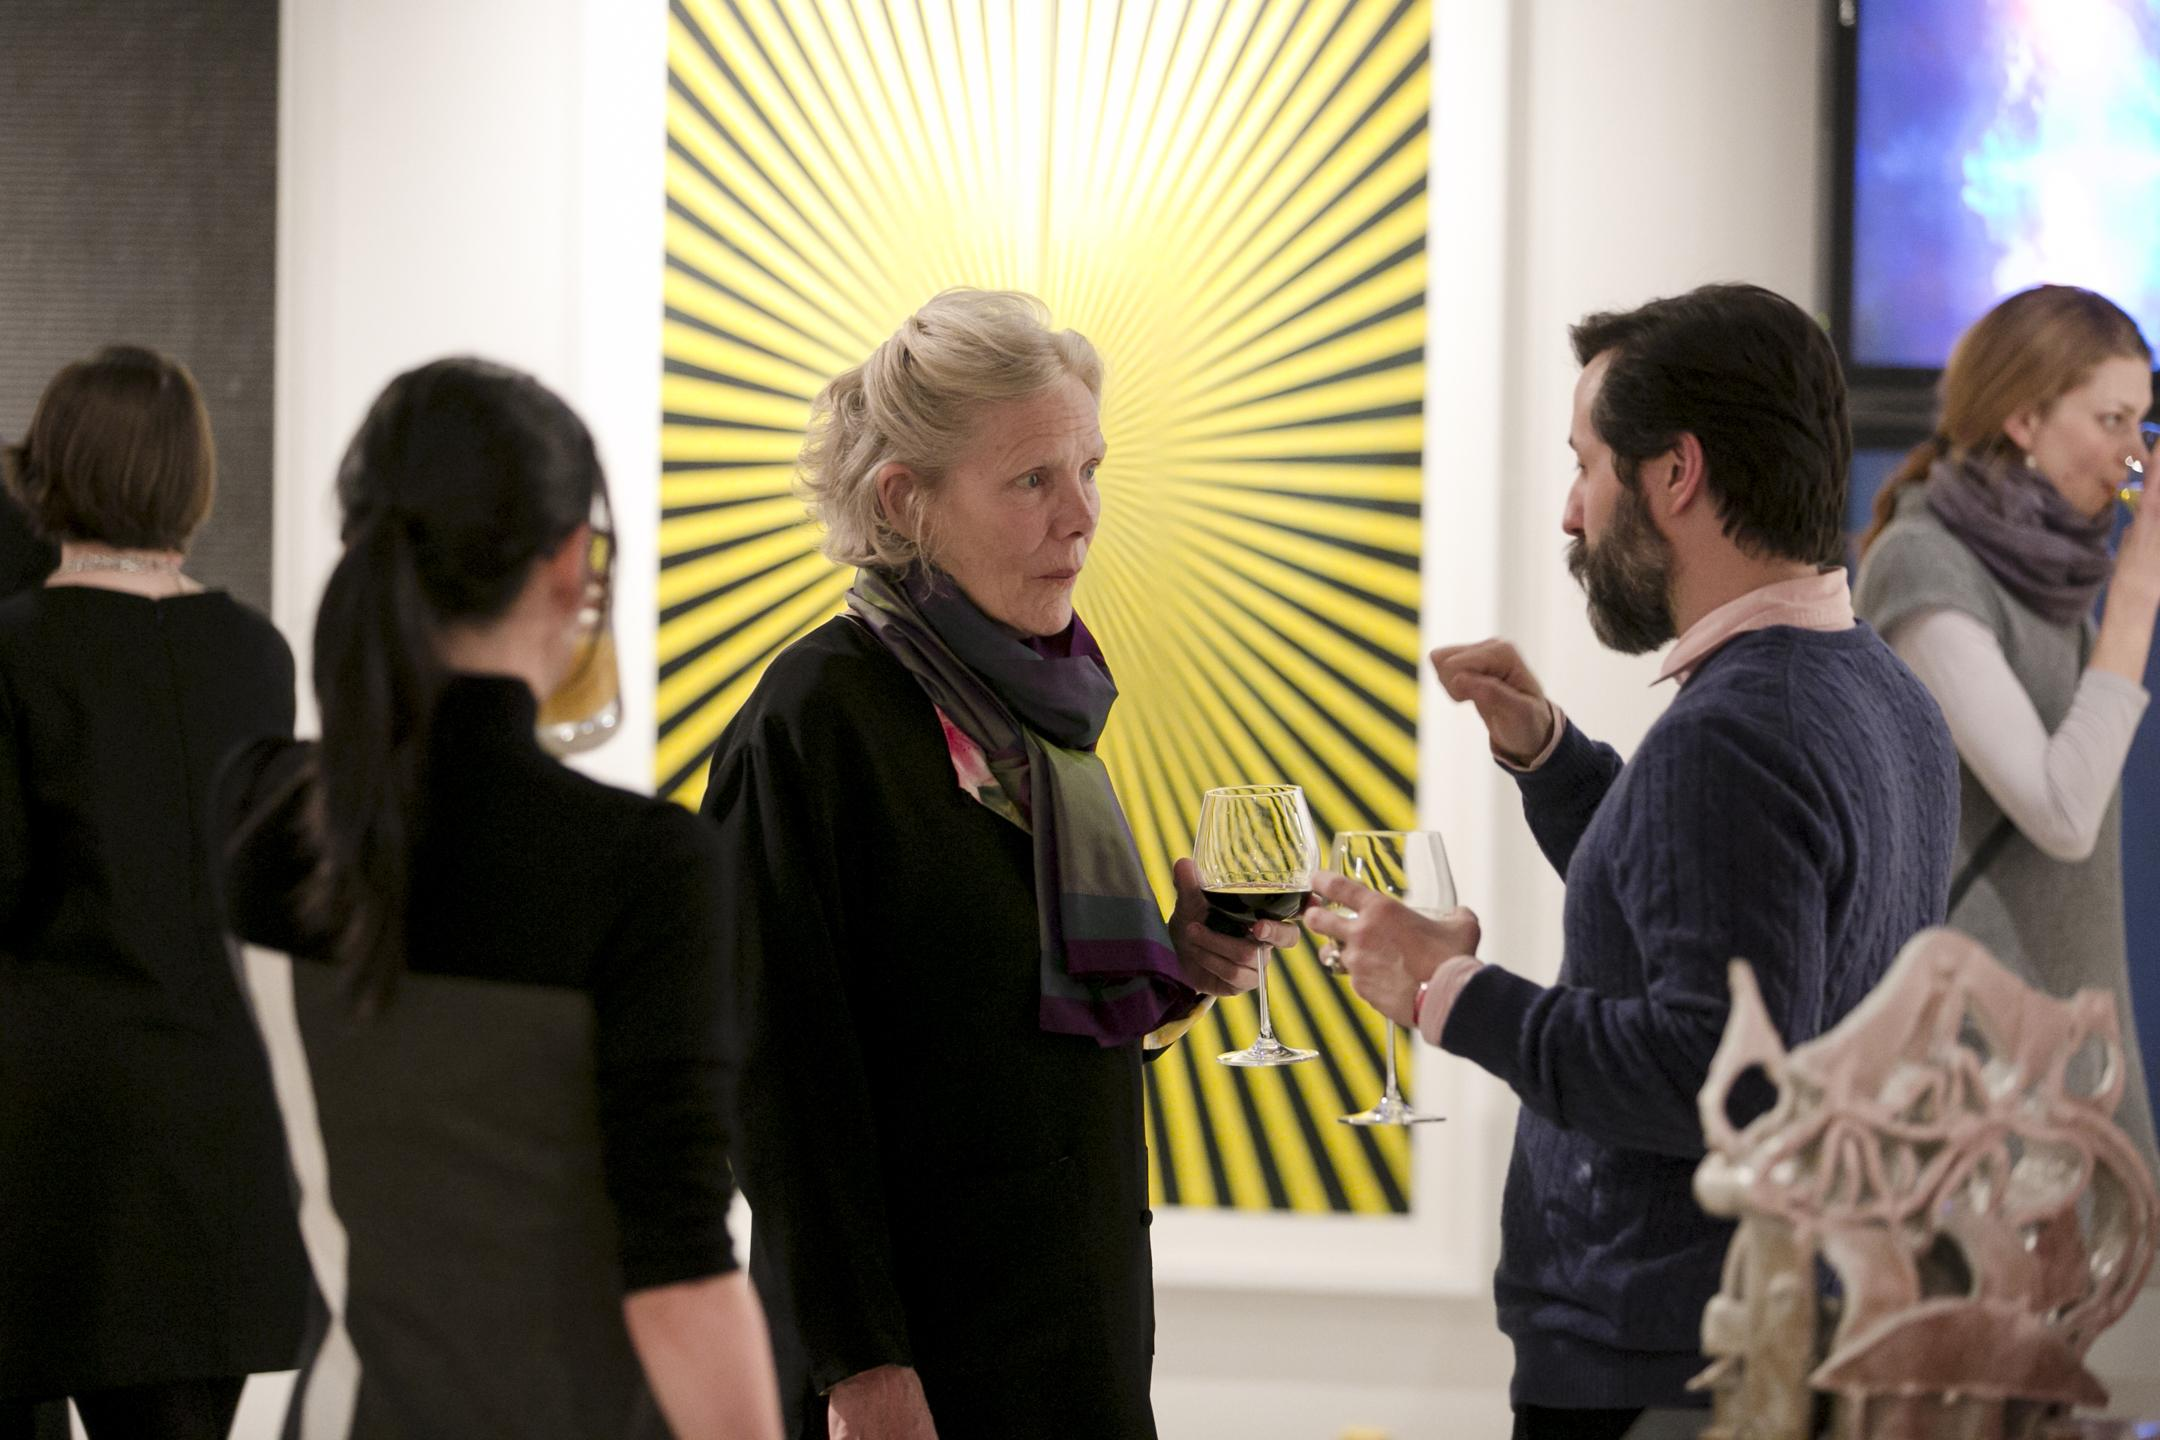 A trio of people socialize and drink wine in a gallery.